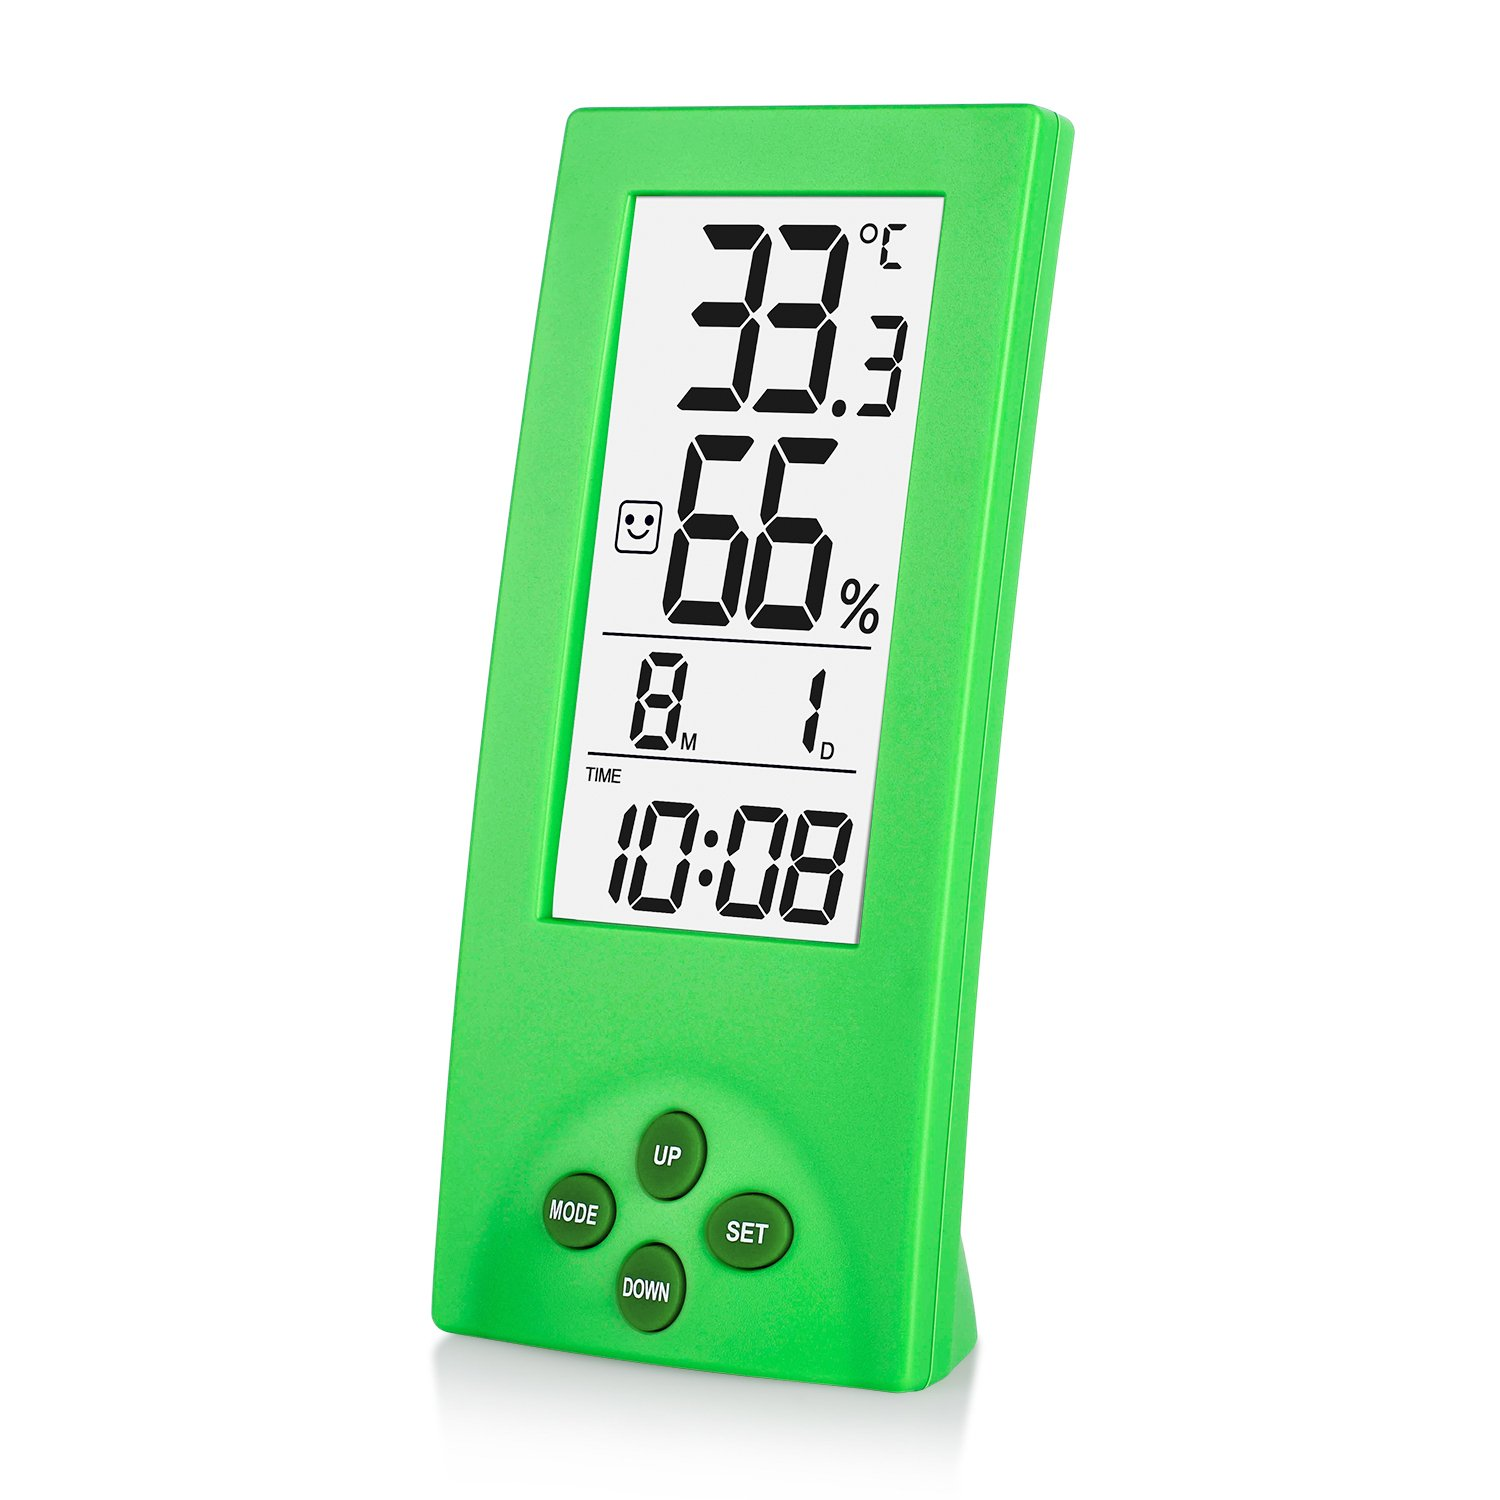 Souldio 5 in 1 Indoor Thermometer Hygrometer Monitor, Digital Hygrometer Gauge, Large & Transparent LCD Disply Humidity, with Time/Date/Temperature/Clock for Cooking Baking Sports Game Home Office